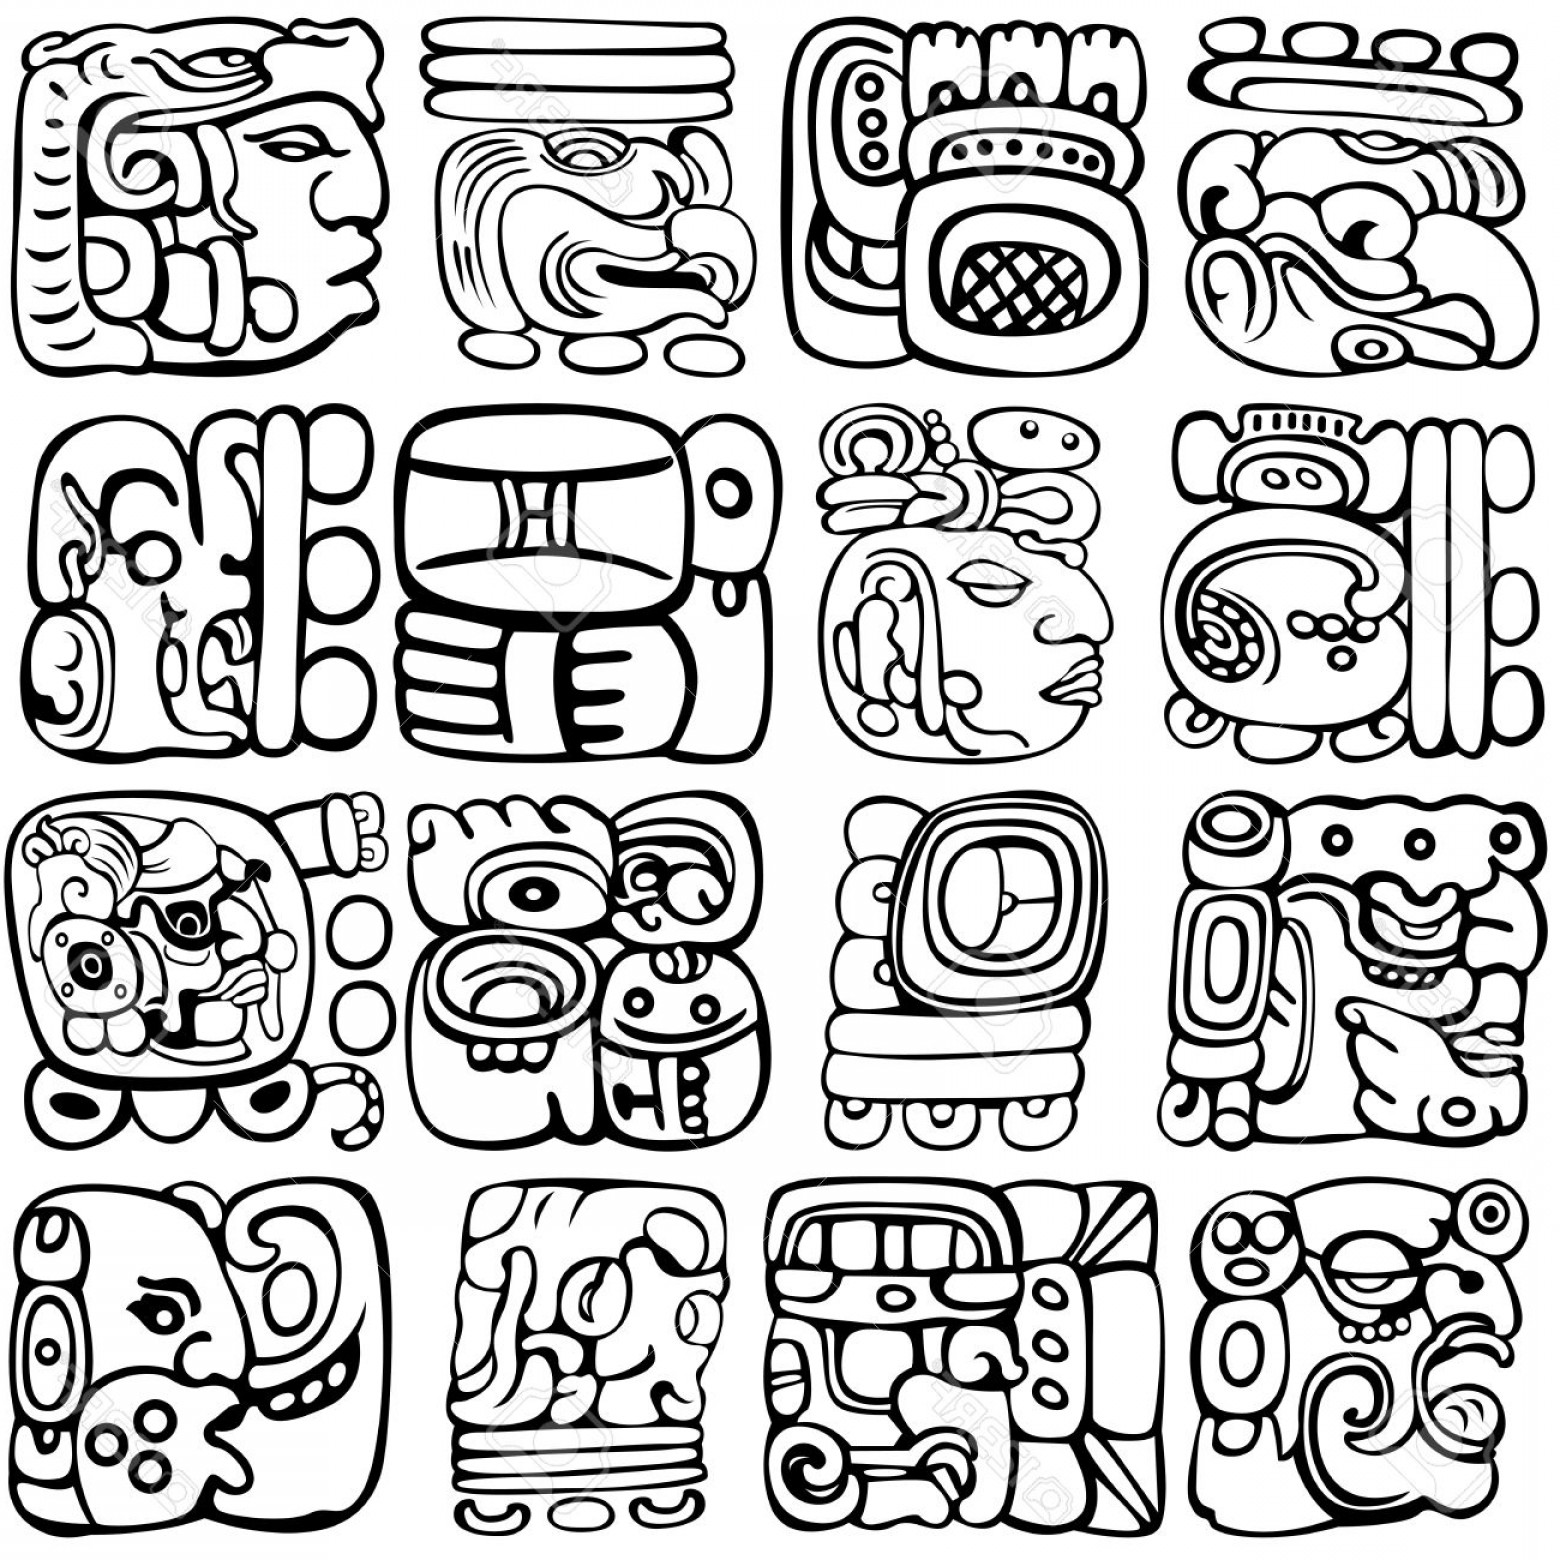 Mayan Vector: Photostock Vector Vector Set Of Mayan And Aztec Glyphs With Ancient Gods And Characters On White